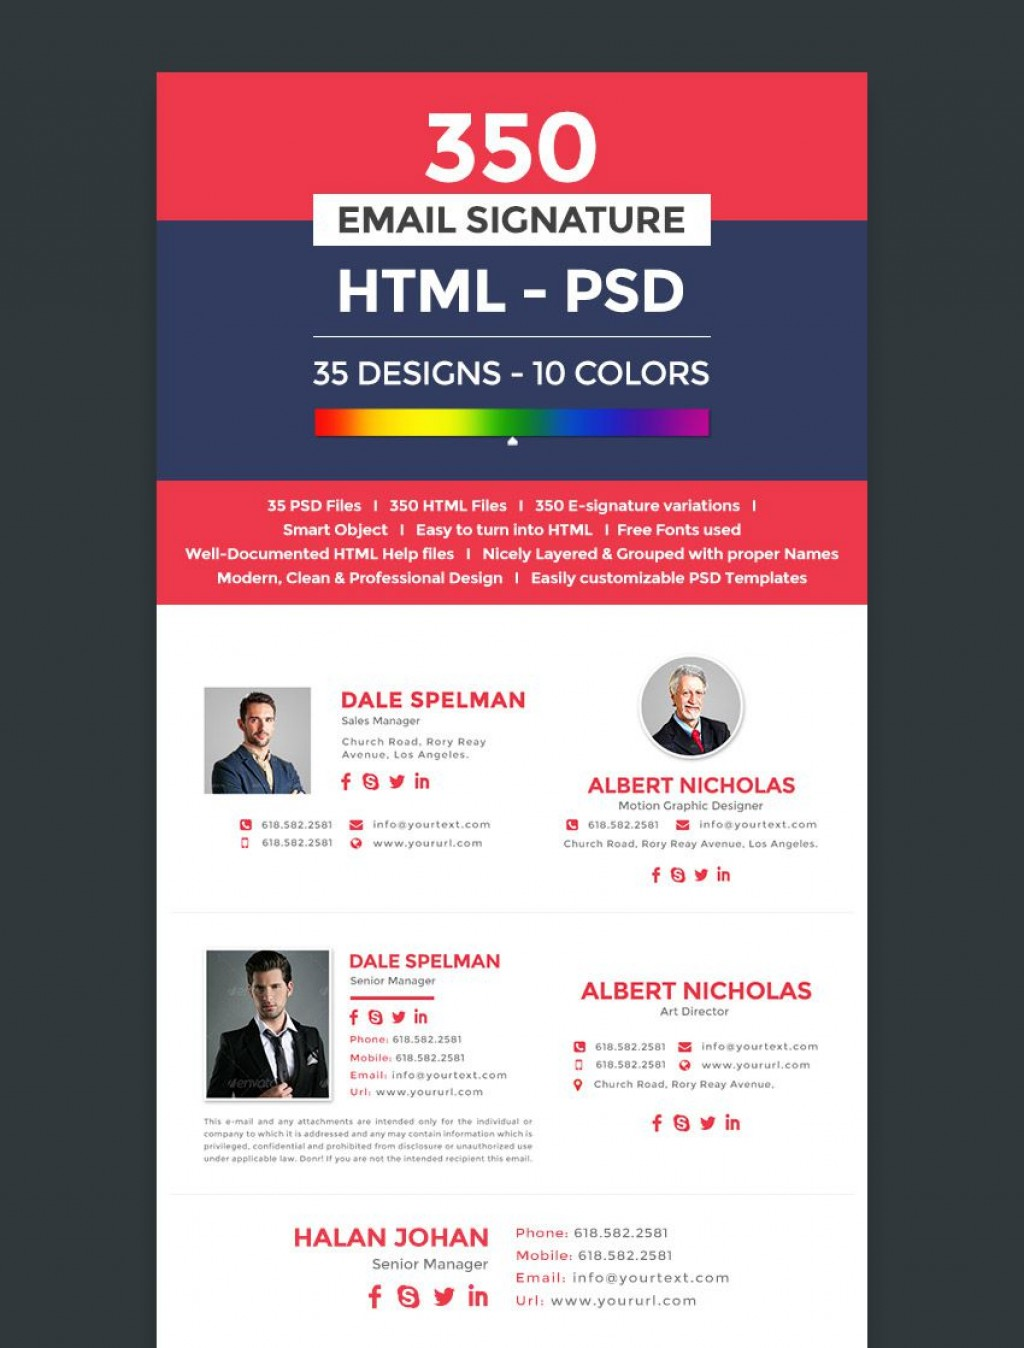 006 Fearsome Html Email Signature Template Highest Quality  Logo Thunderbird GeneratorLarge